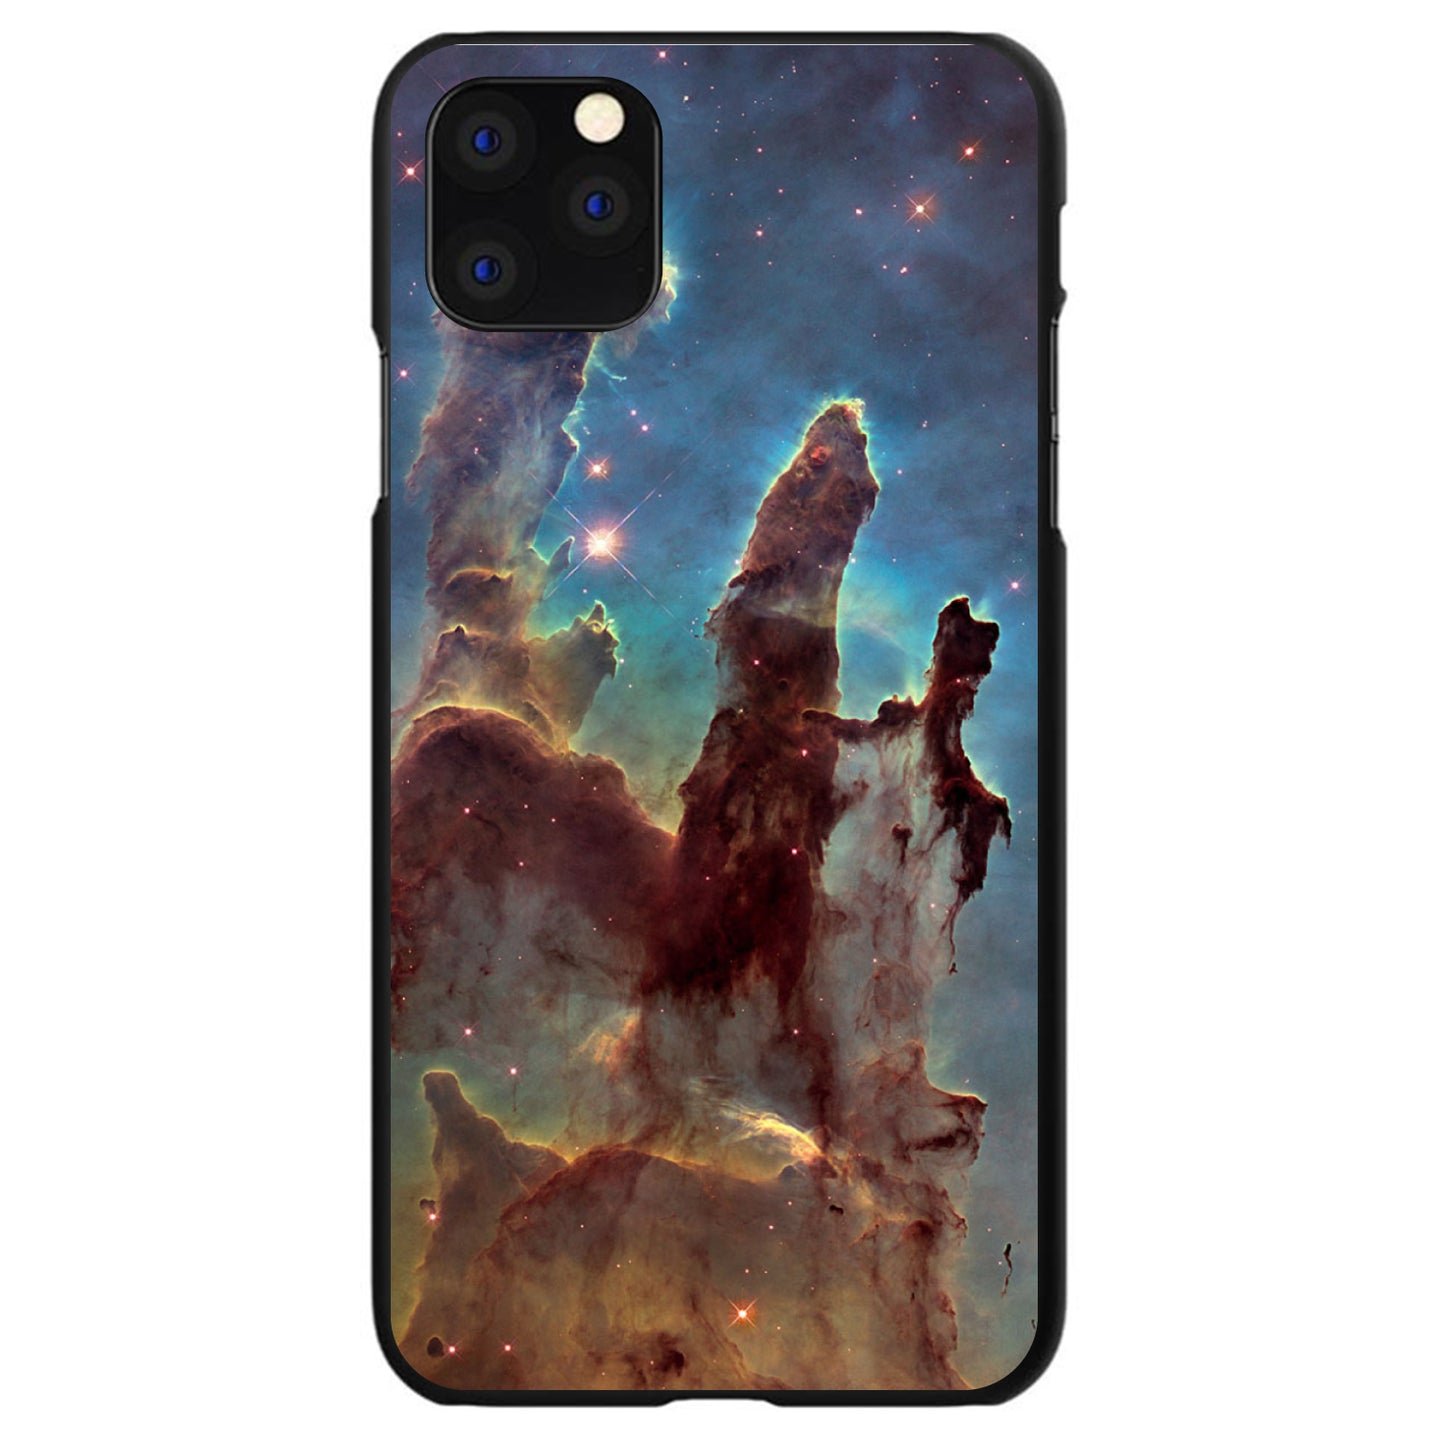 DistinctInk® Hard Plastic Snap-On Case for Apple iPhone - Pillars of Creation